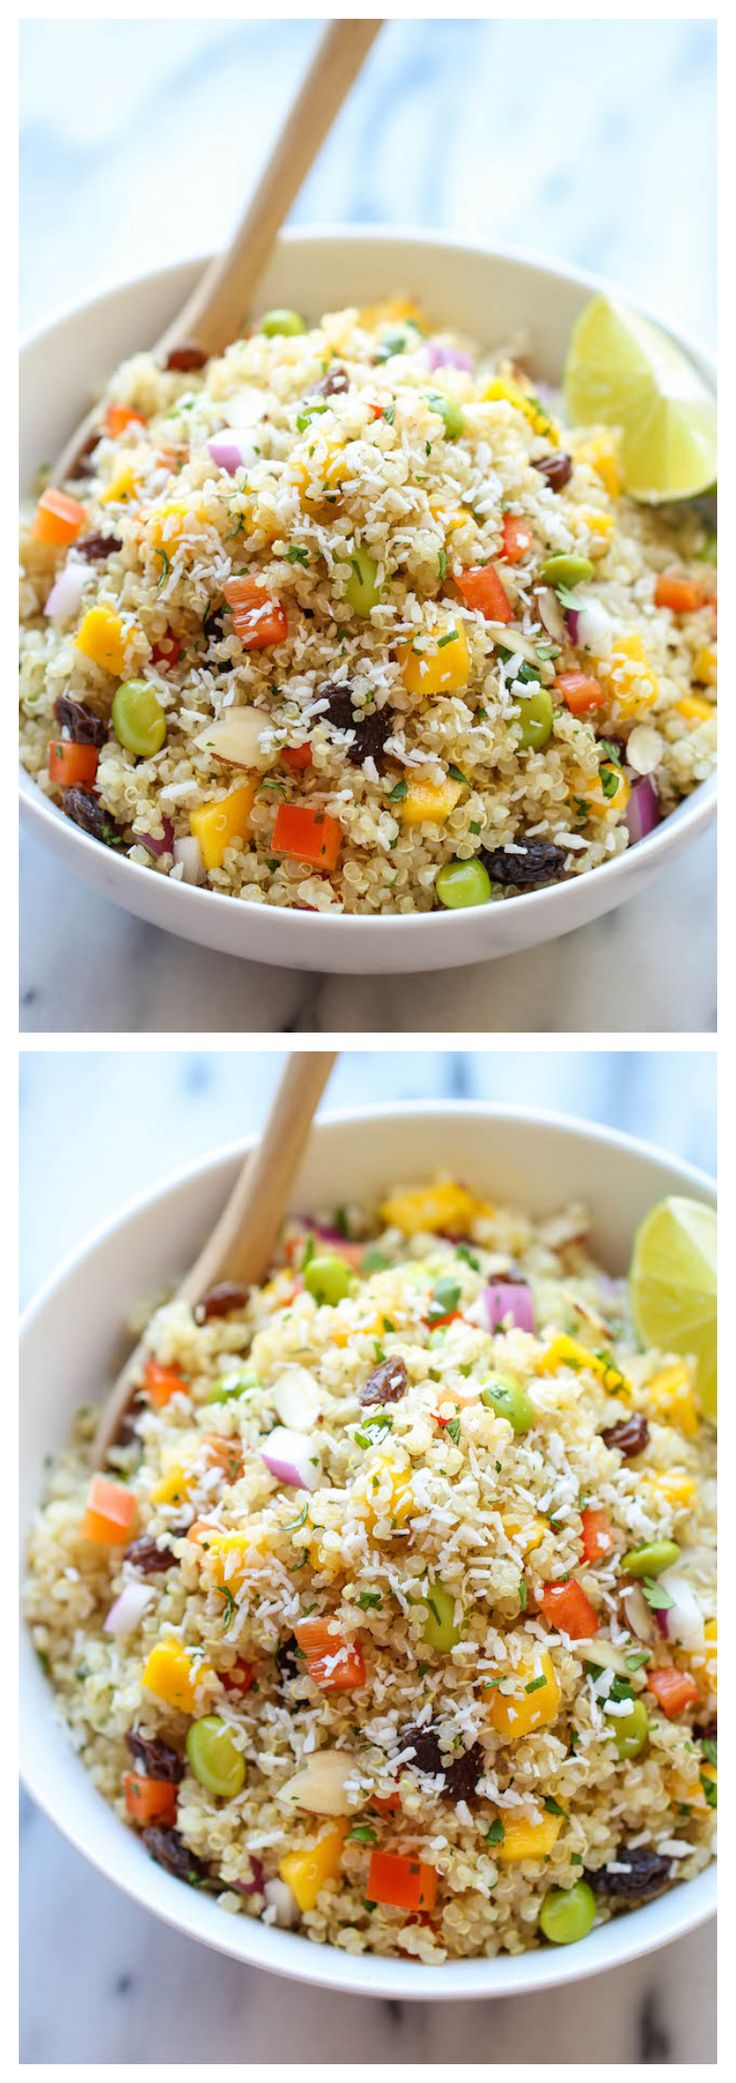 Whole Food's California Quinoa Salad - A healthy, nutritious copycat recipe that tastes 1000x better than the store-bought version! @bonnie_leigh